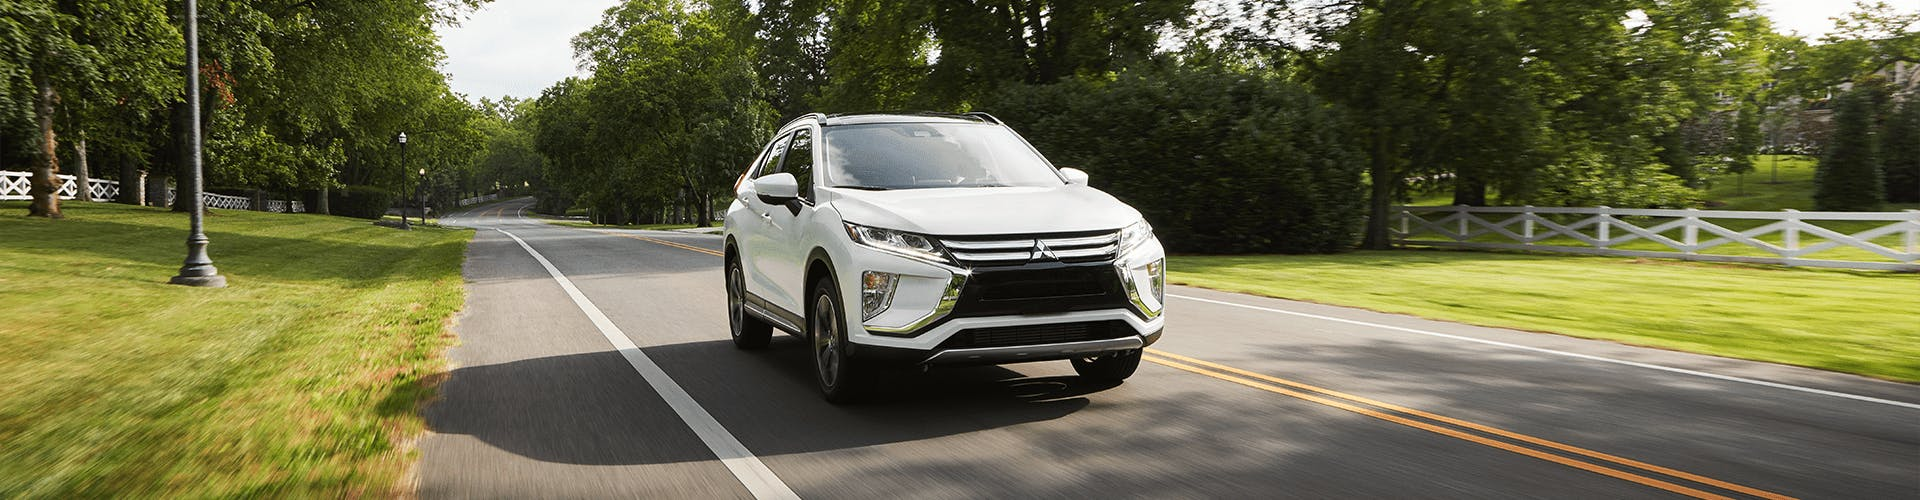 2020 eclipse cross - white exterior - banner image